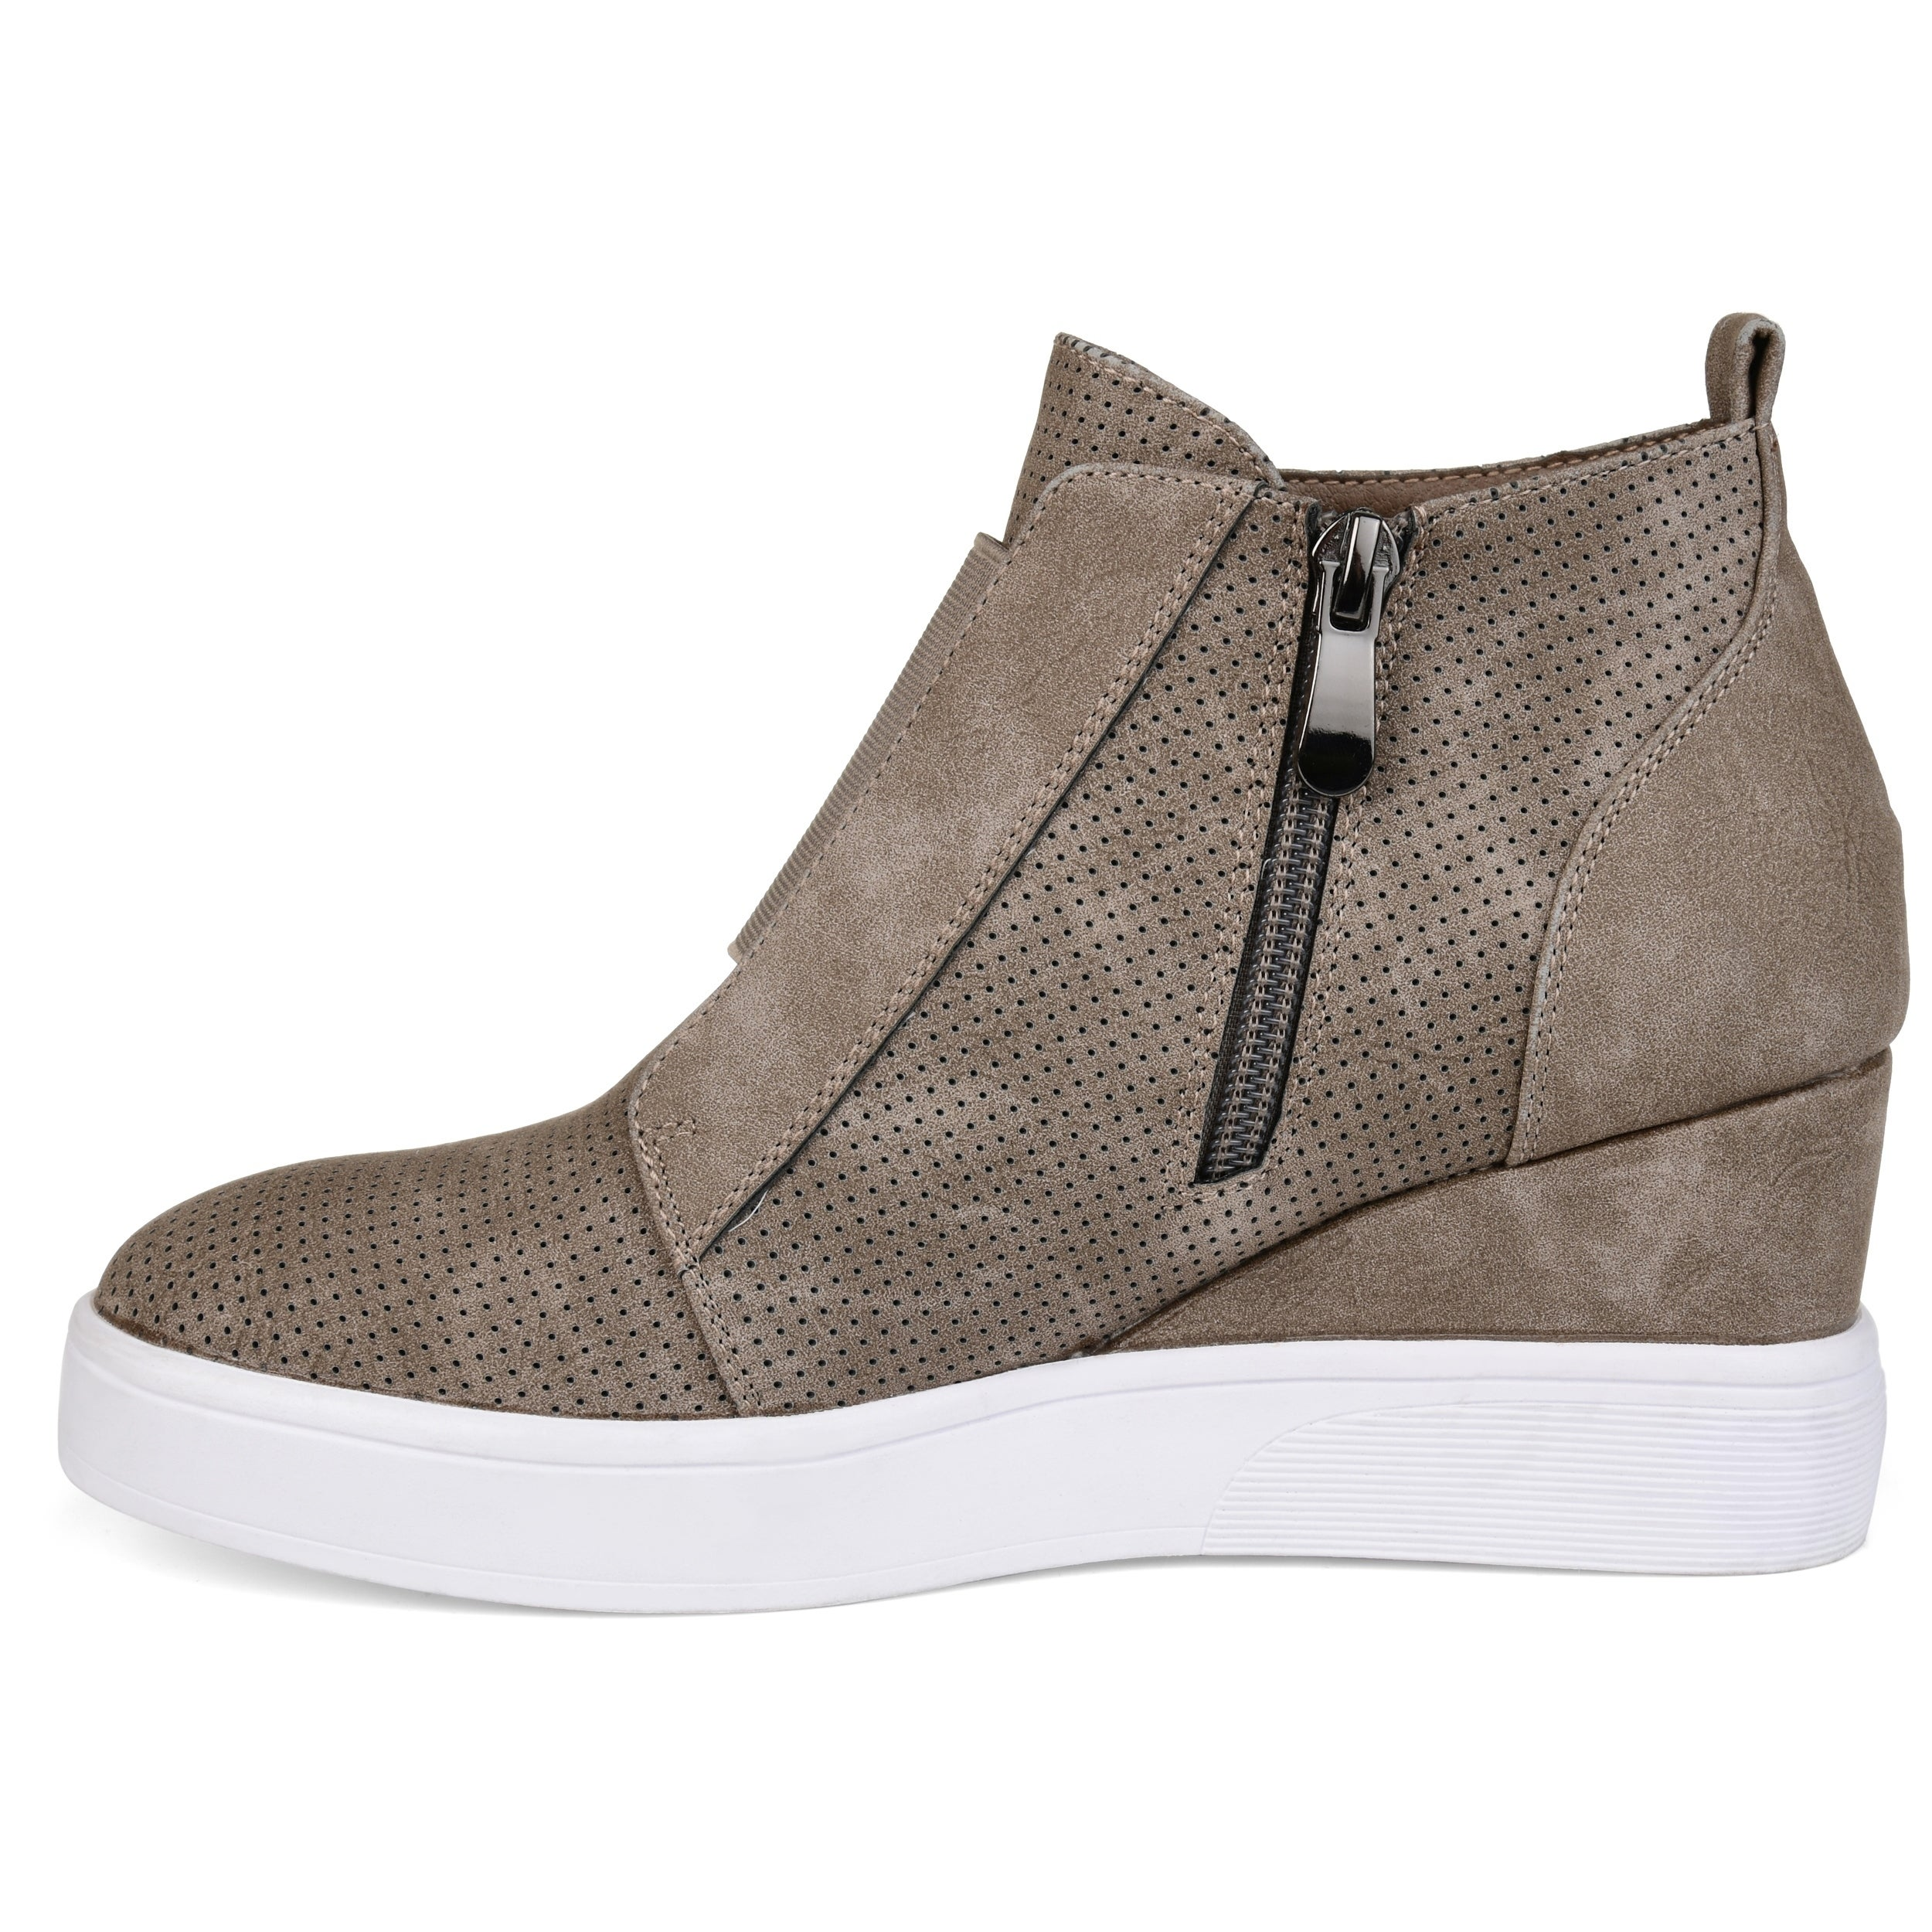 6158d2ec948 Shop Journee Collection Women s  Clara  Athleisure Laser-cut Sneaker Wedges  - On Sale - Free Shipping Today - Overstock - 20874053